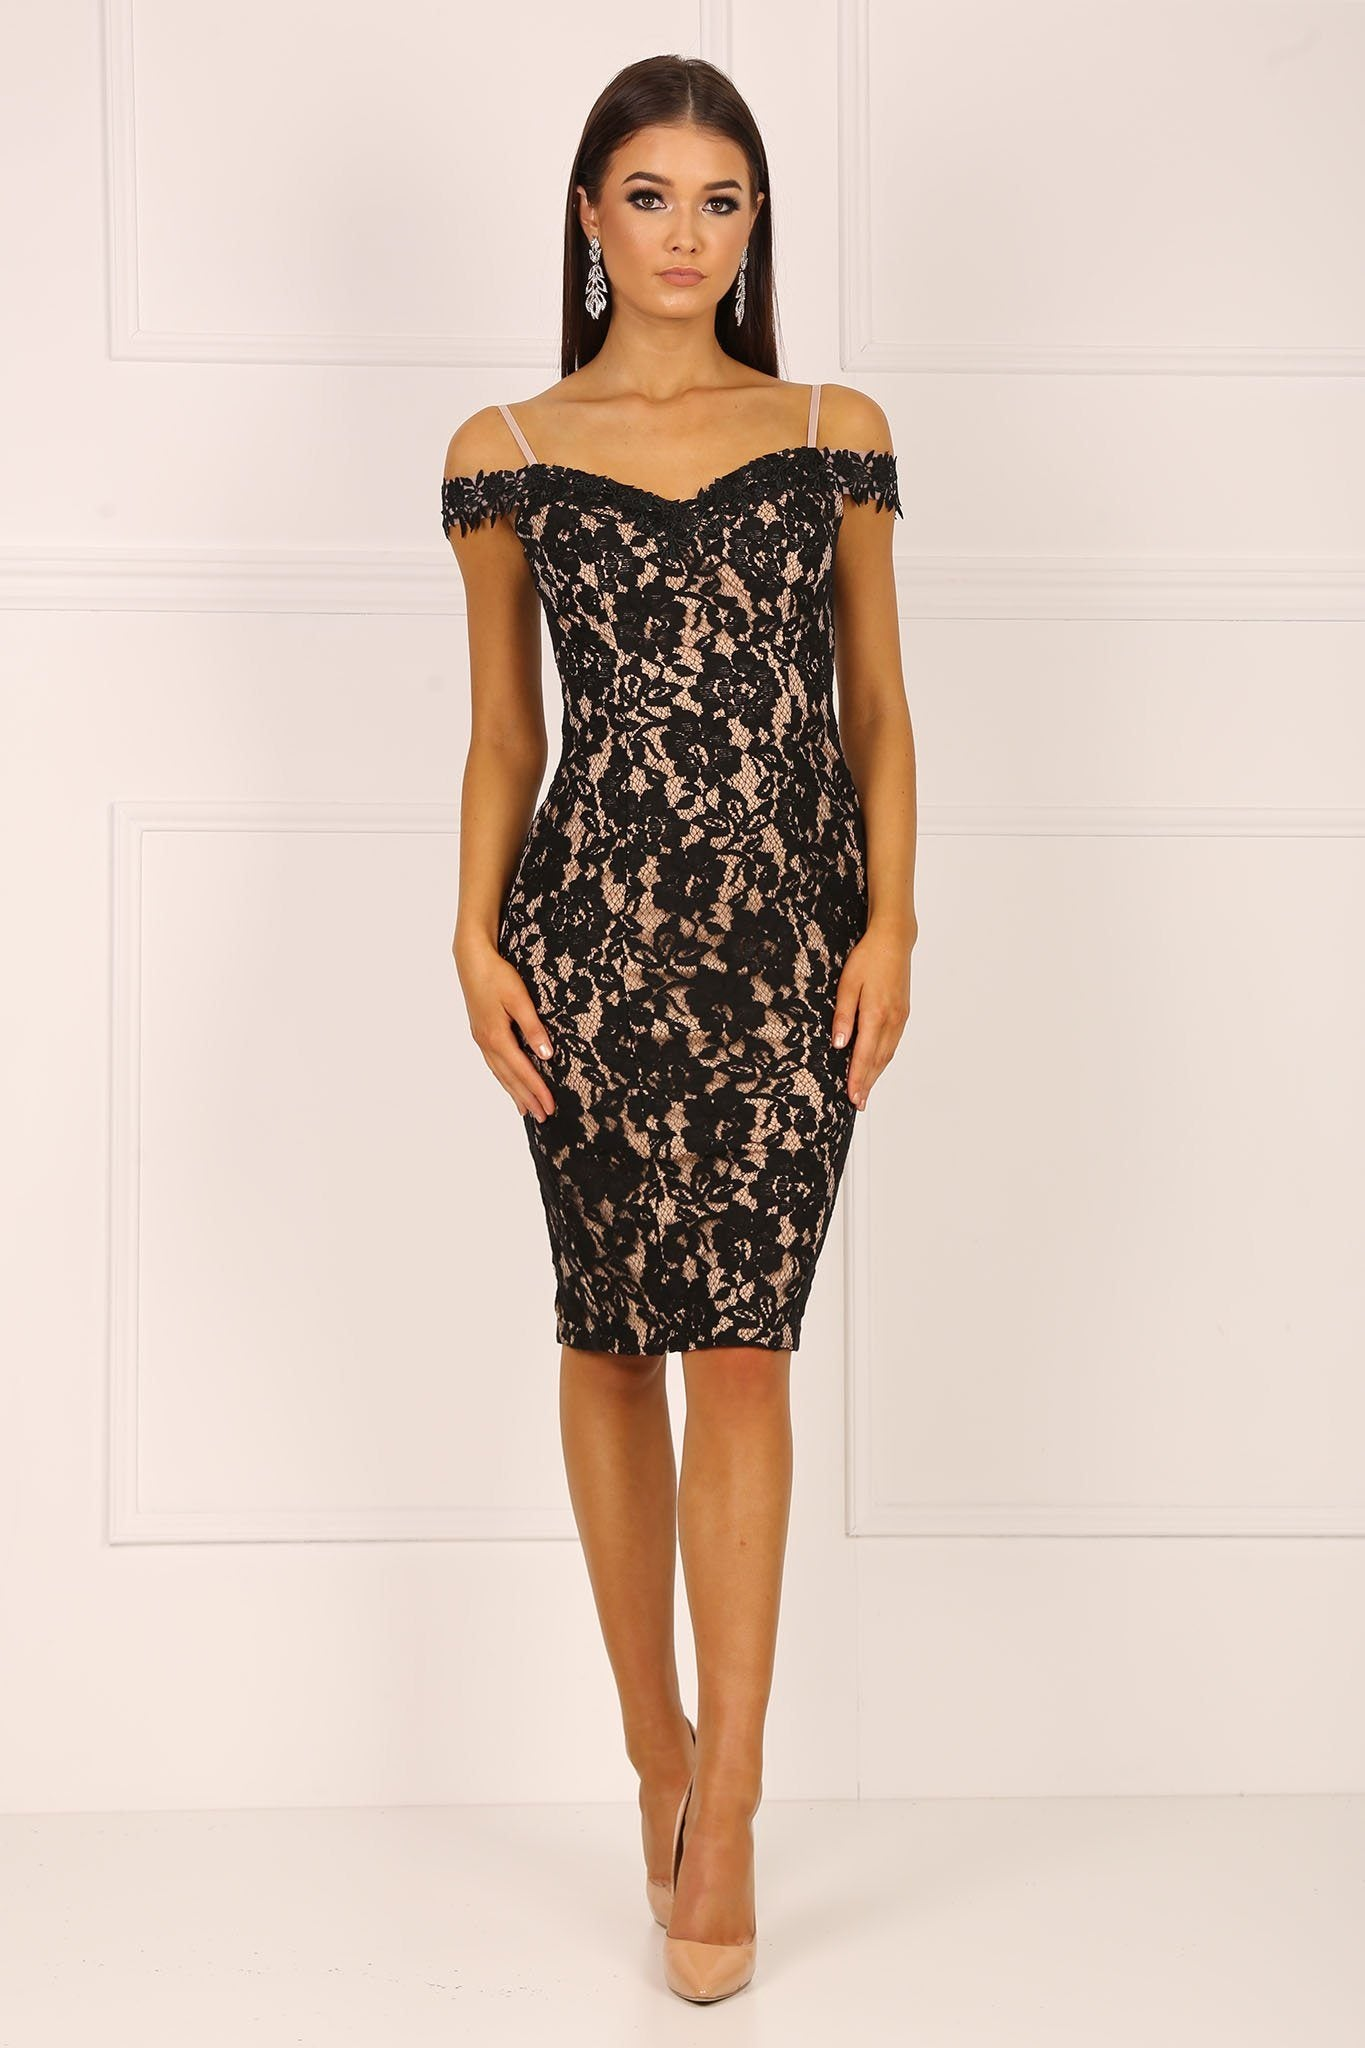 Black knee length form fitted lace dress with beige underlay featuring off the shoulder design and sweetheart neckline